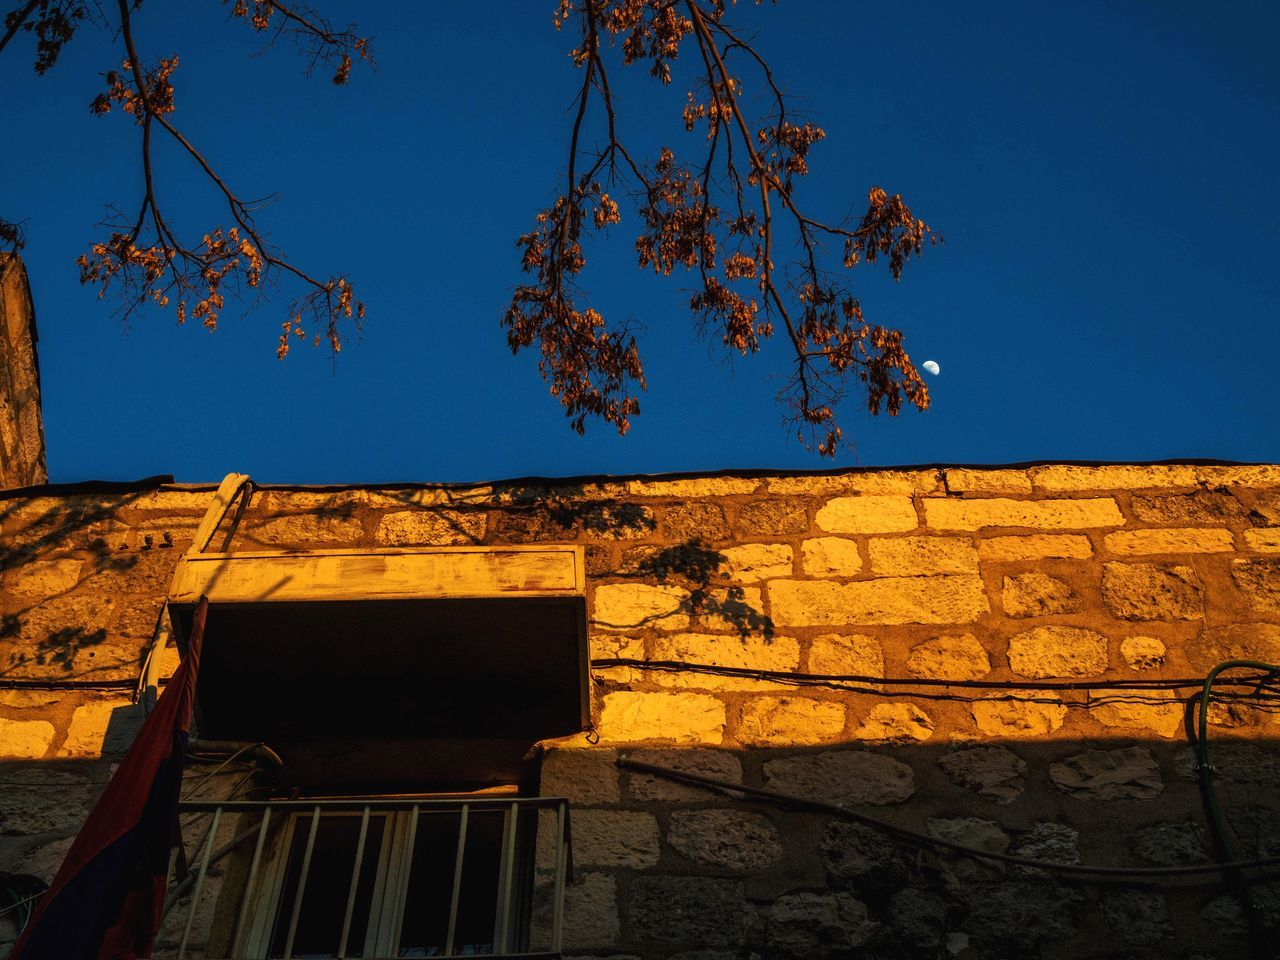 architecture, built structure, building exterior, tree, low angle view, outdoors, no people, branch, day, growth, clear sky, blue, nature, sky, beauty in nature, tiled roof